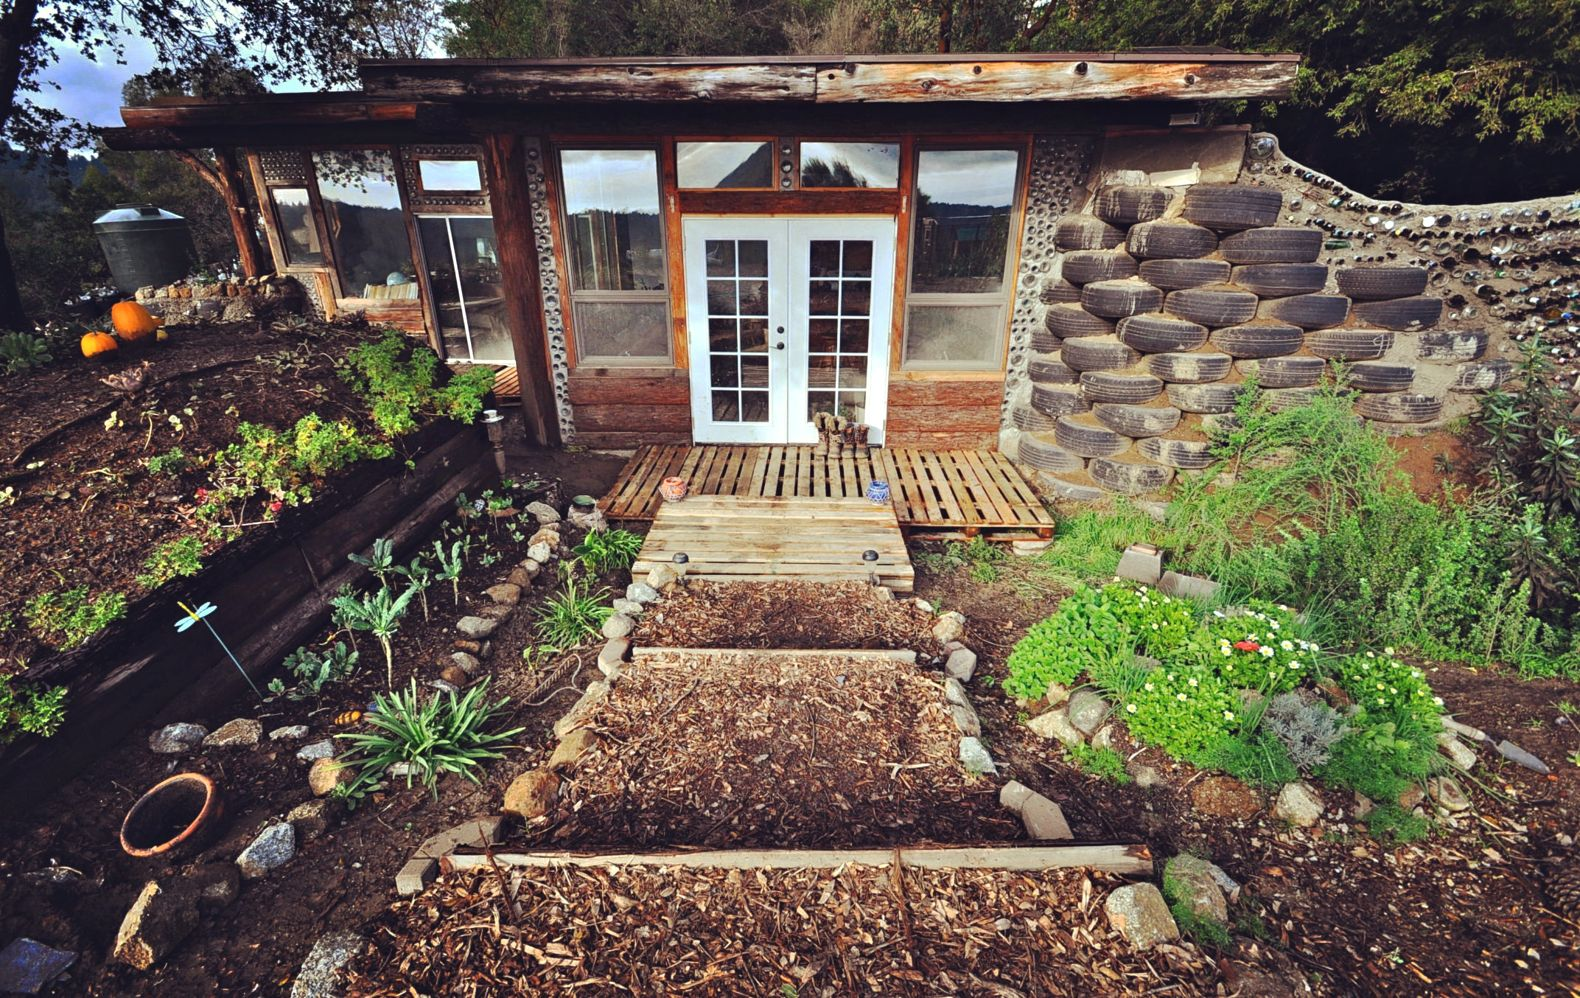 Couple builds an 'Earthship' tiny home for less than $10K